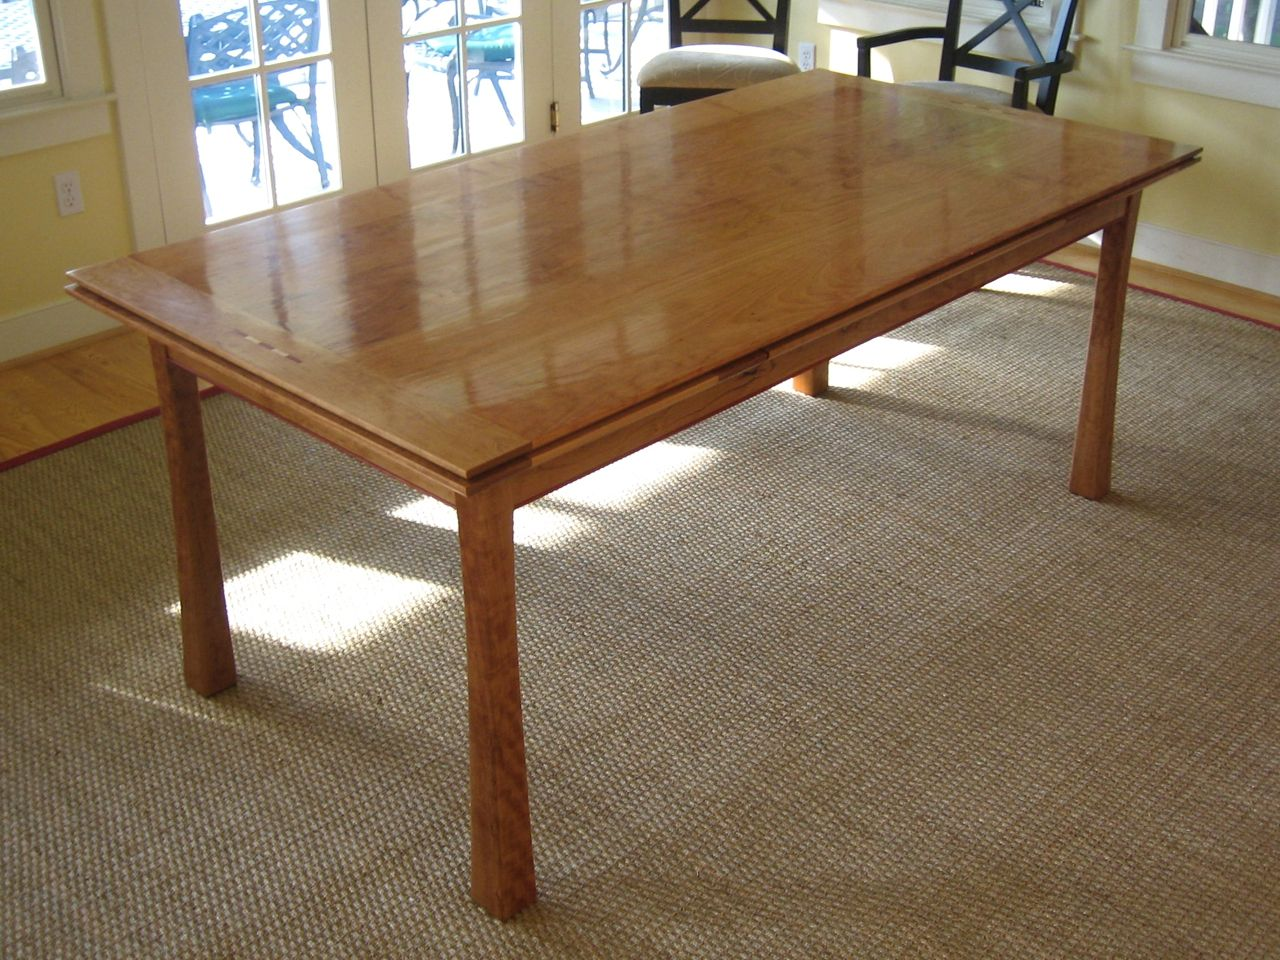 This Extension Dining Table Is A Pleasure To Use And Behold The Operation Of Leaves Based On Tage Frids Dutch Pull Out Design Meaning Th